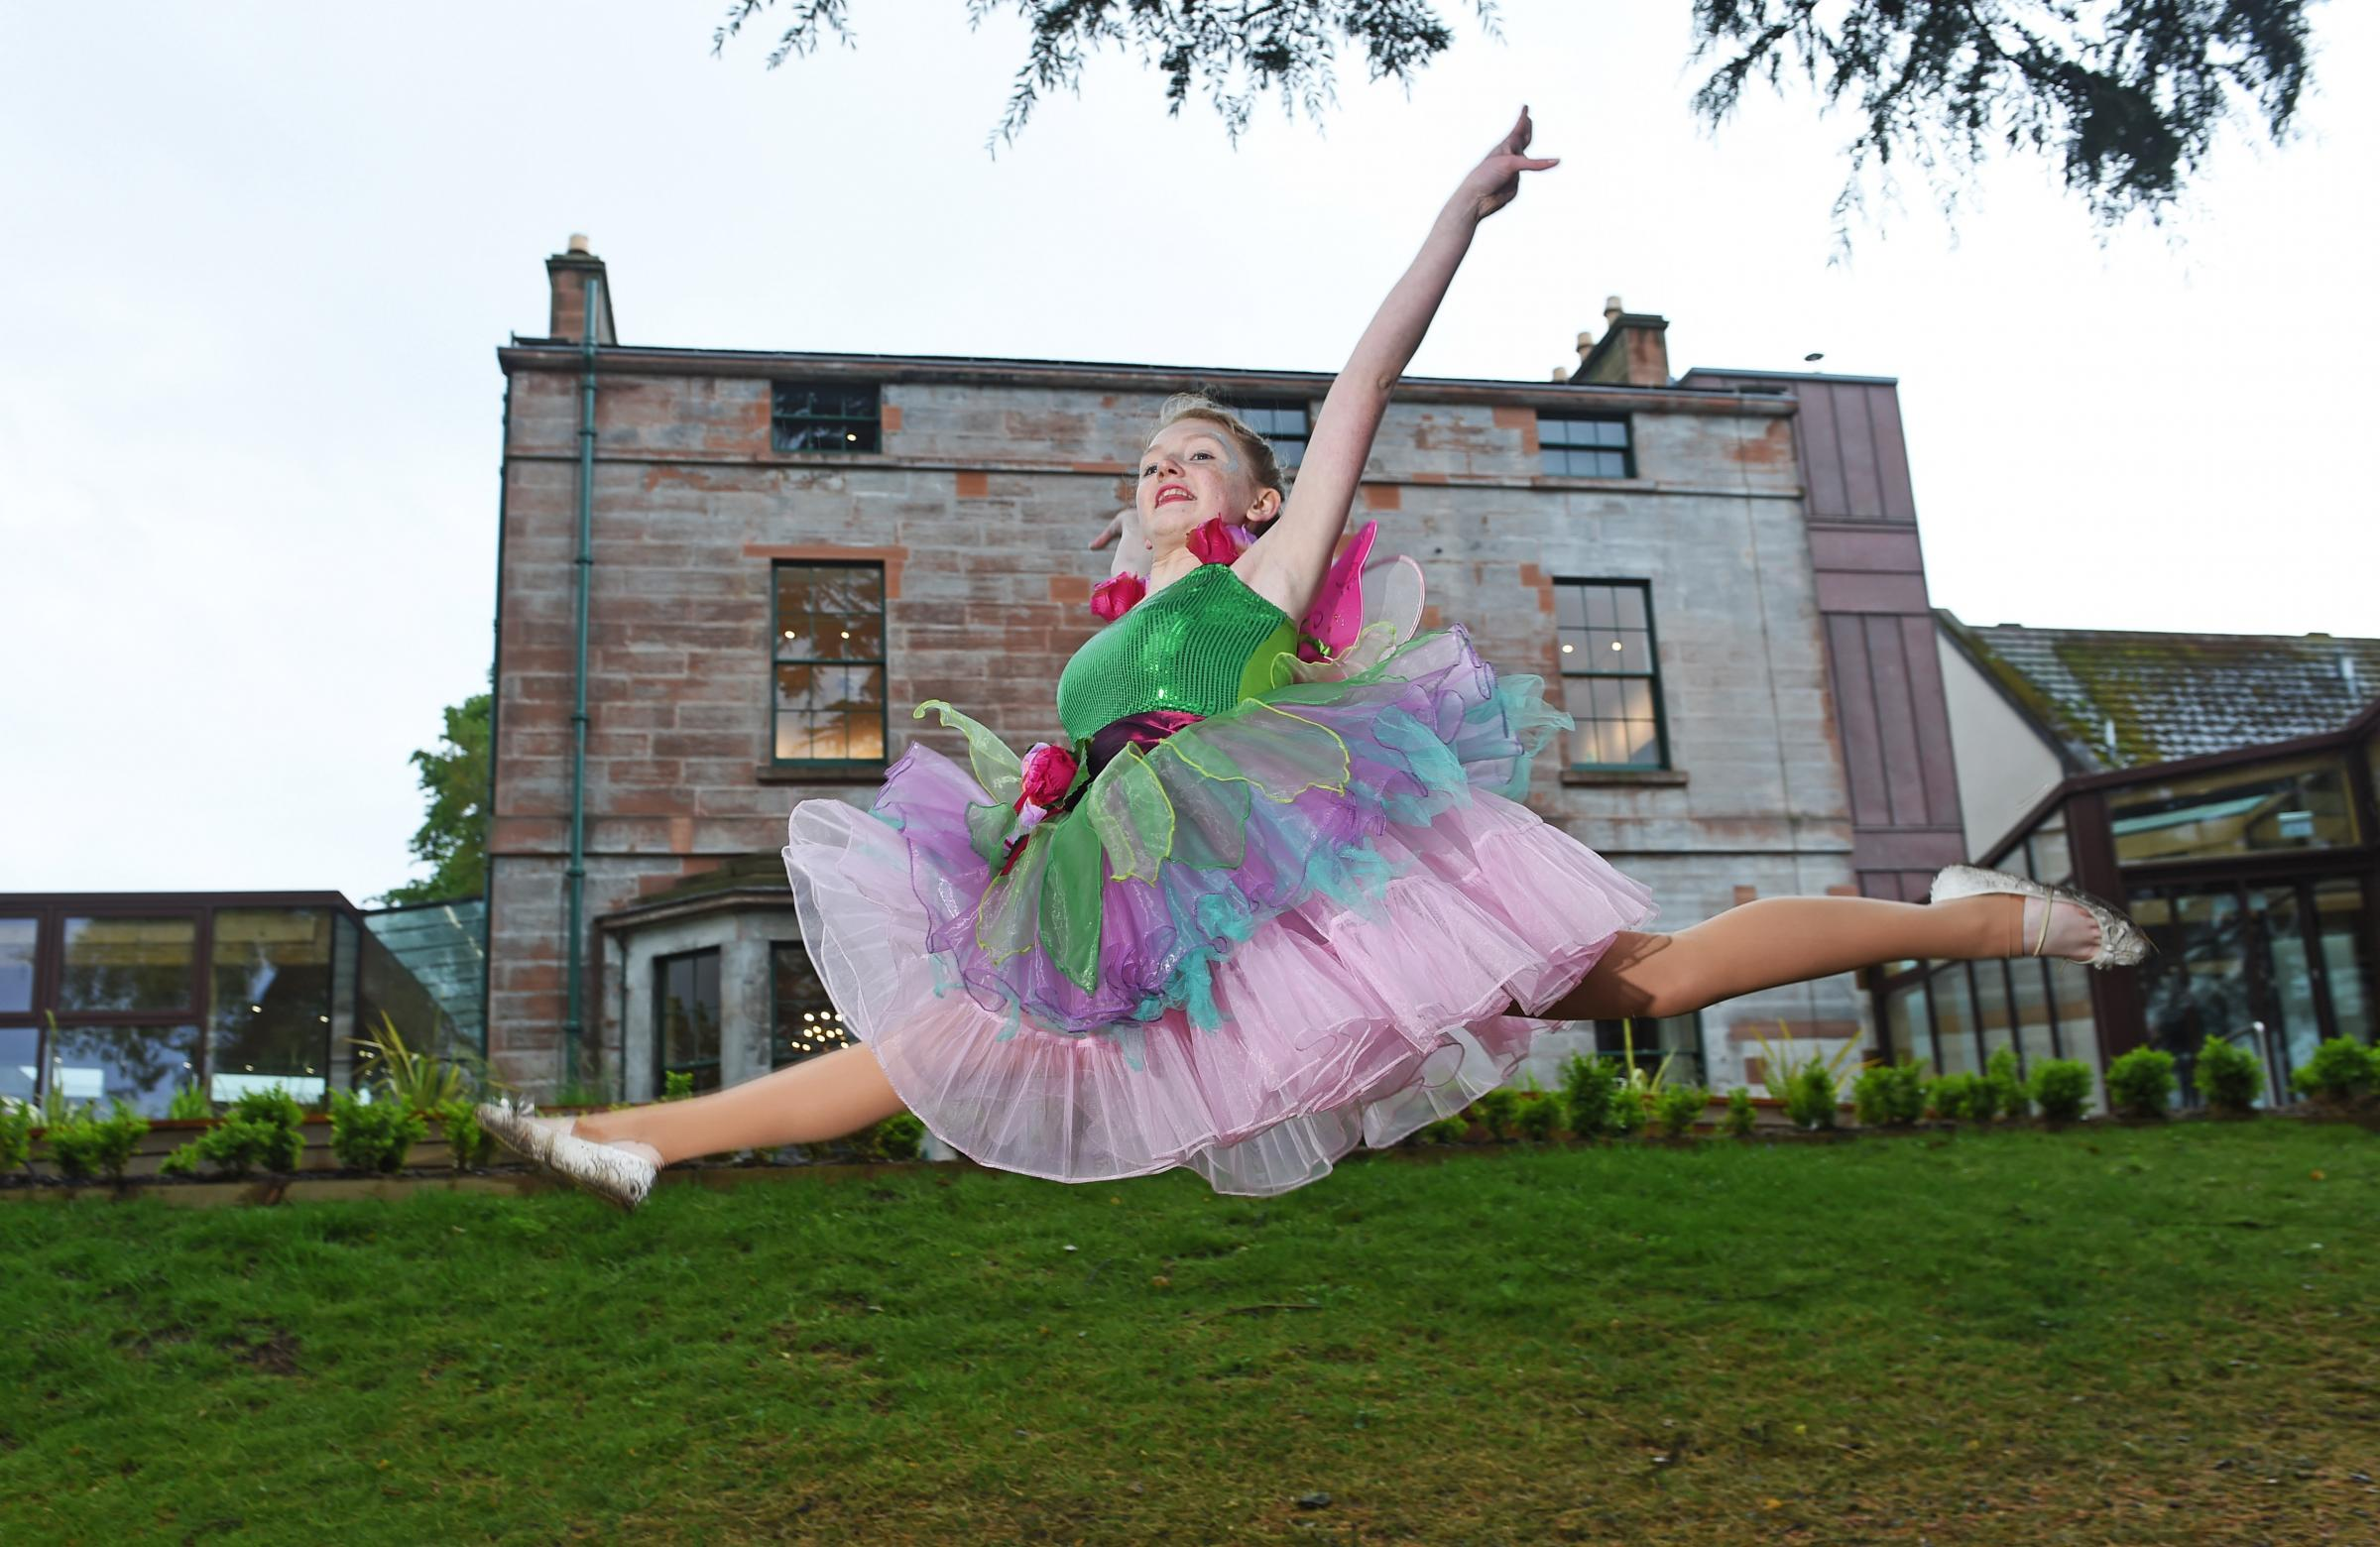 Discover Scots birthplace of Peter Pan at JM Barrie's childhood home Moat Brae